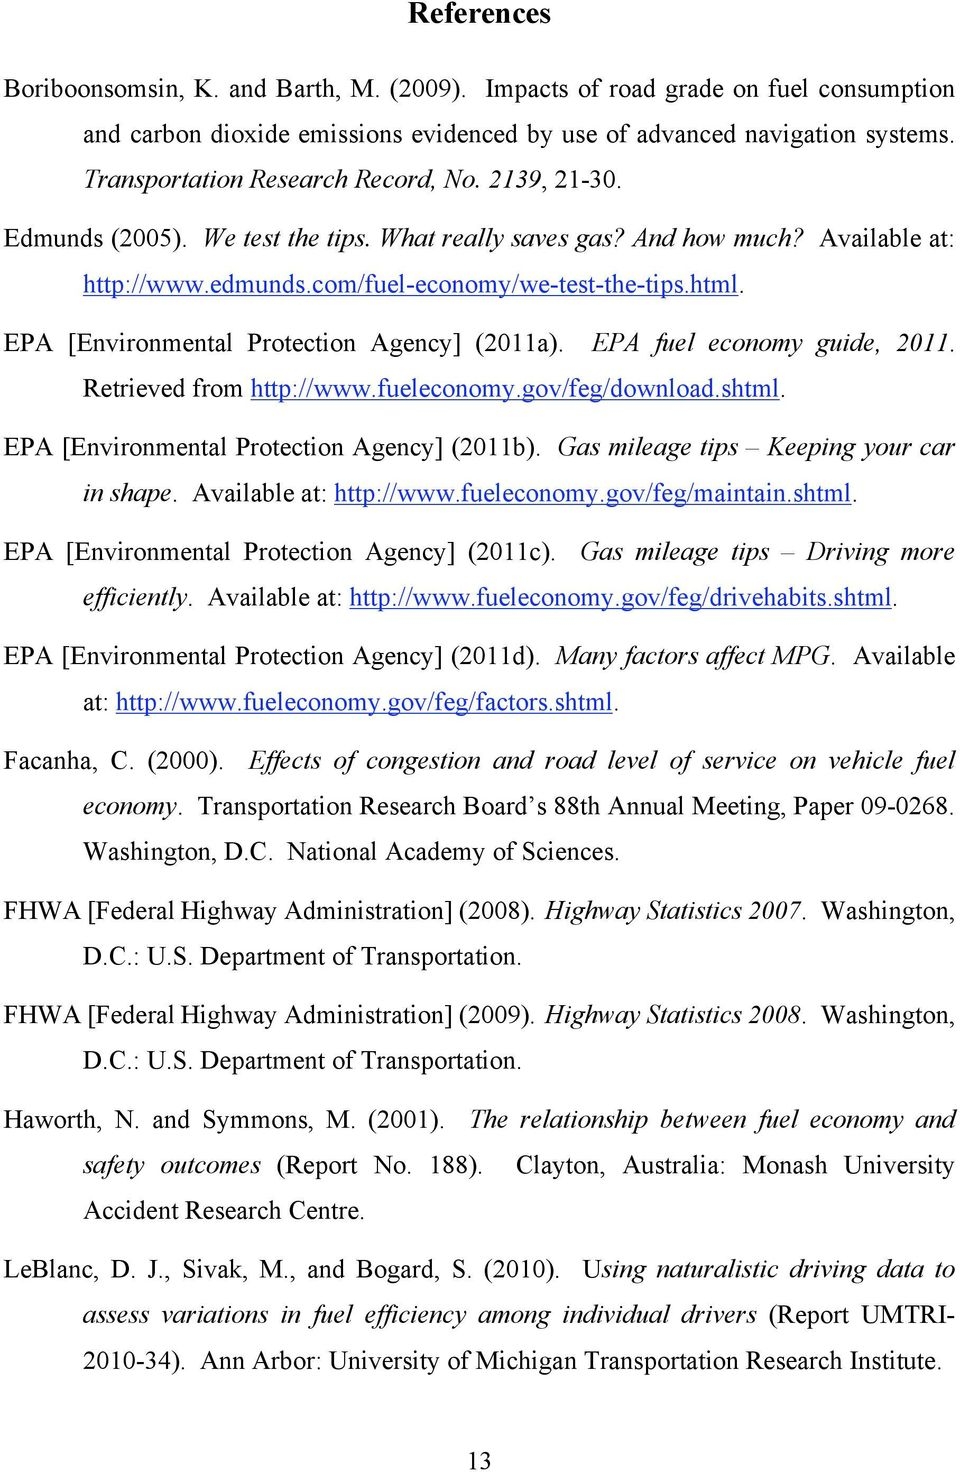 EPA [Environmental Protection Agency] (2011a). EPA fuel economy guide, 2011. Retrieved from http://www.fueleconomy.gov/feg/download.shtml. EPA [Environmental Protection Agency] (2011b).